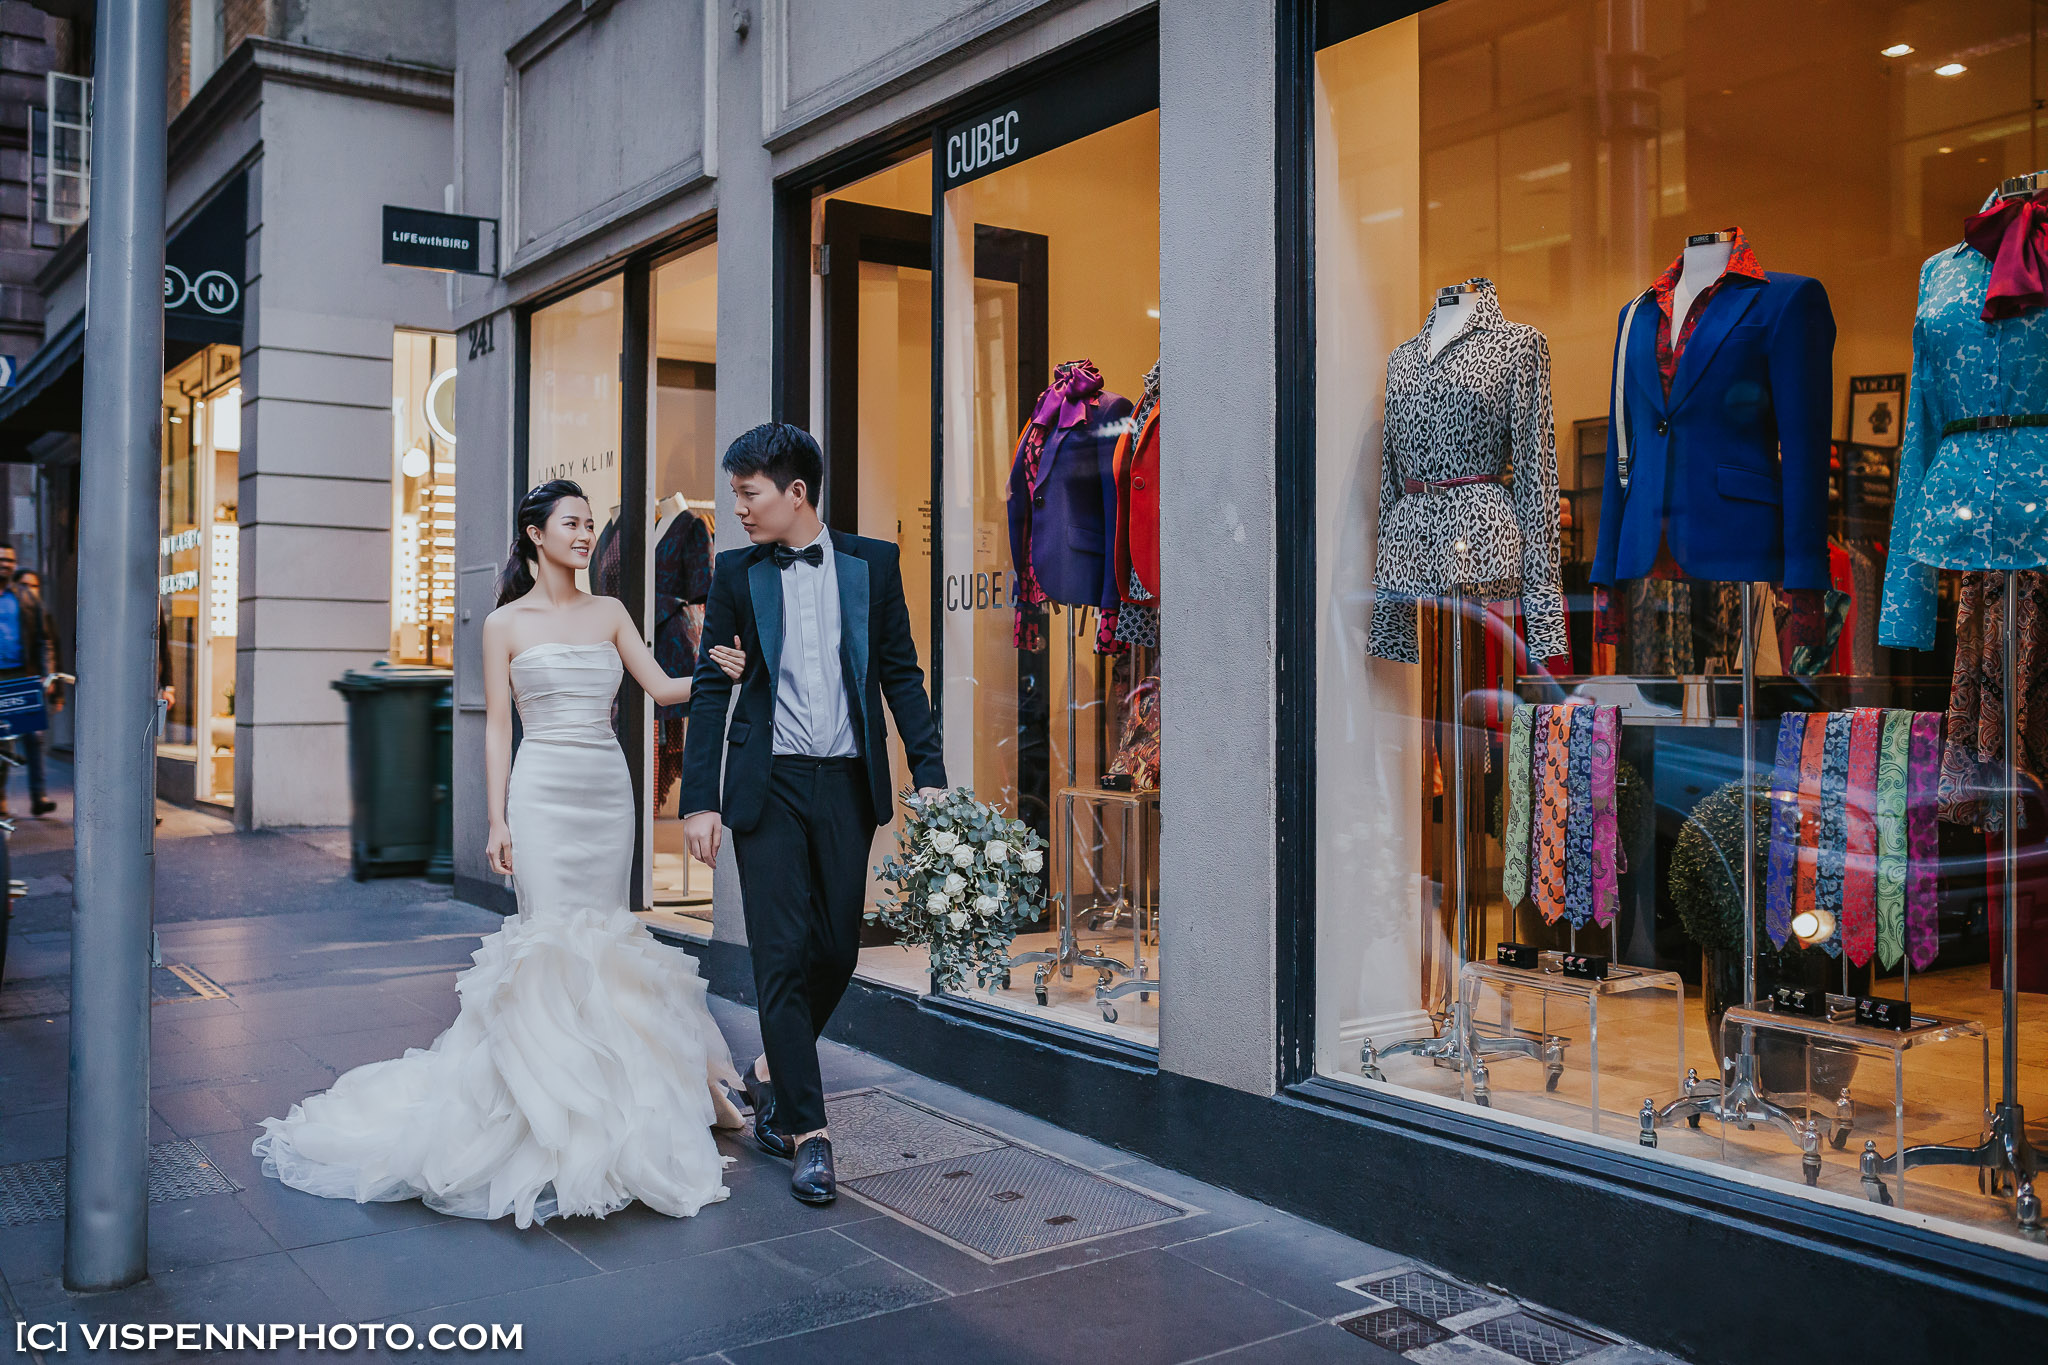 PRE WEDDING Photography Melbourne ZHPENN P5D4 2235